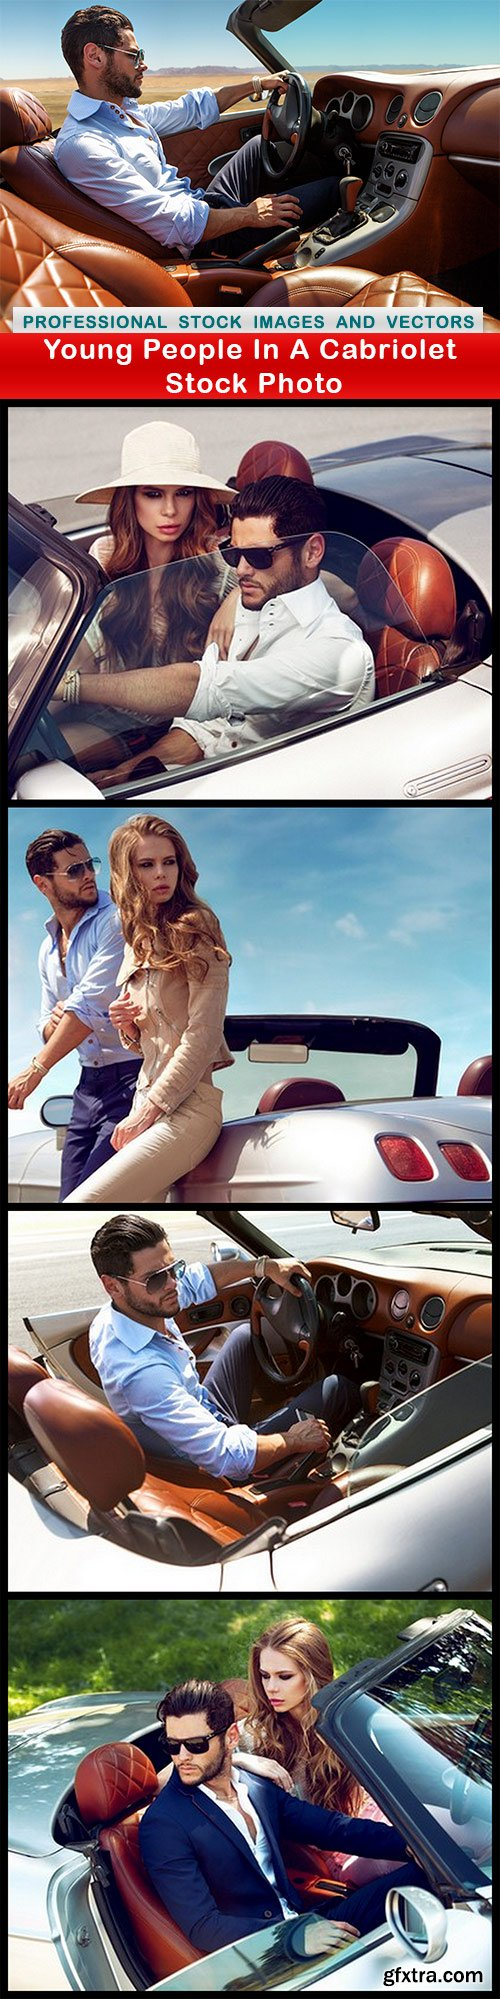 Young People In A Cabriolet Stock Photo - 5 UHQ JPEG